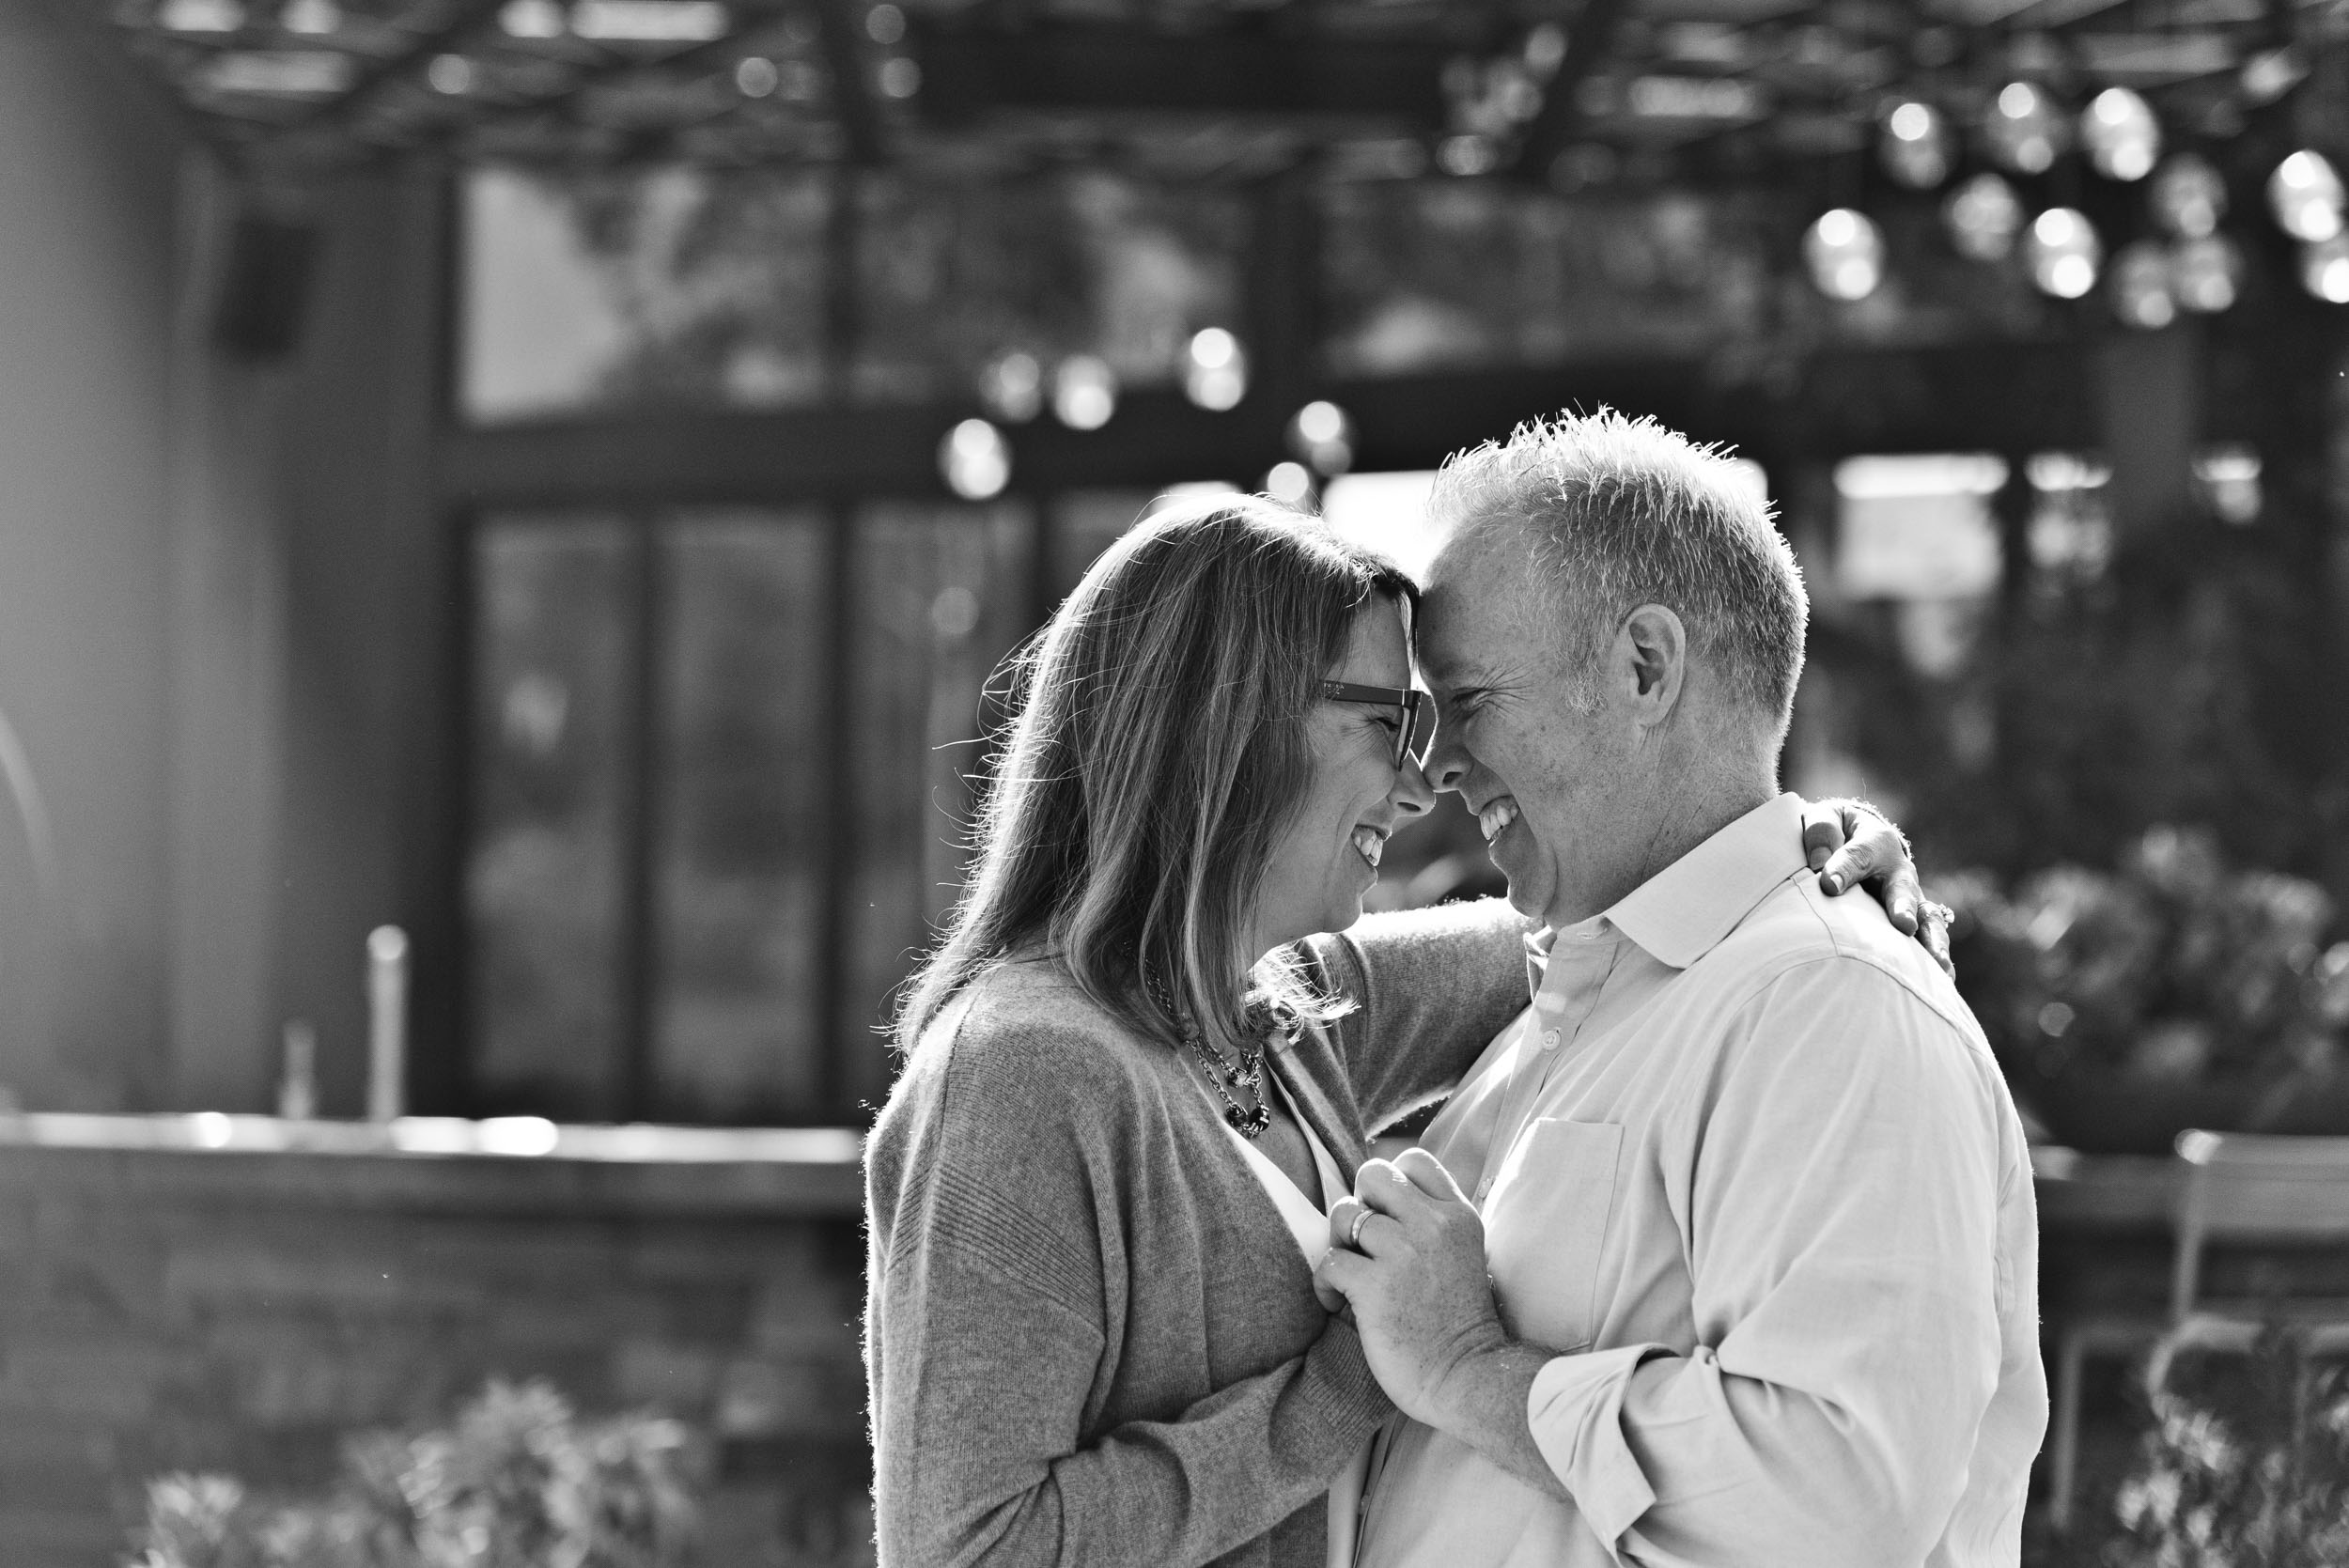 Mom and dad dancing in the park and smiling at each other.